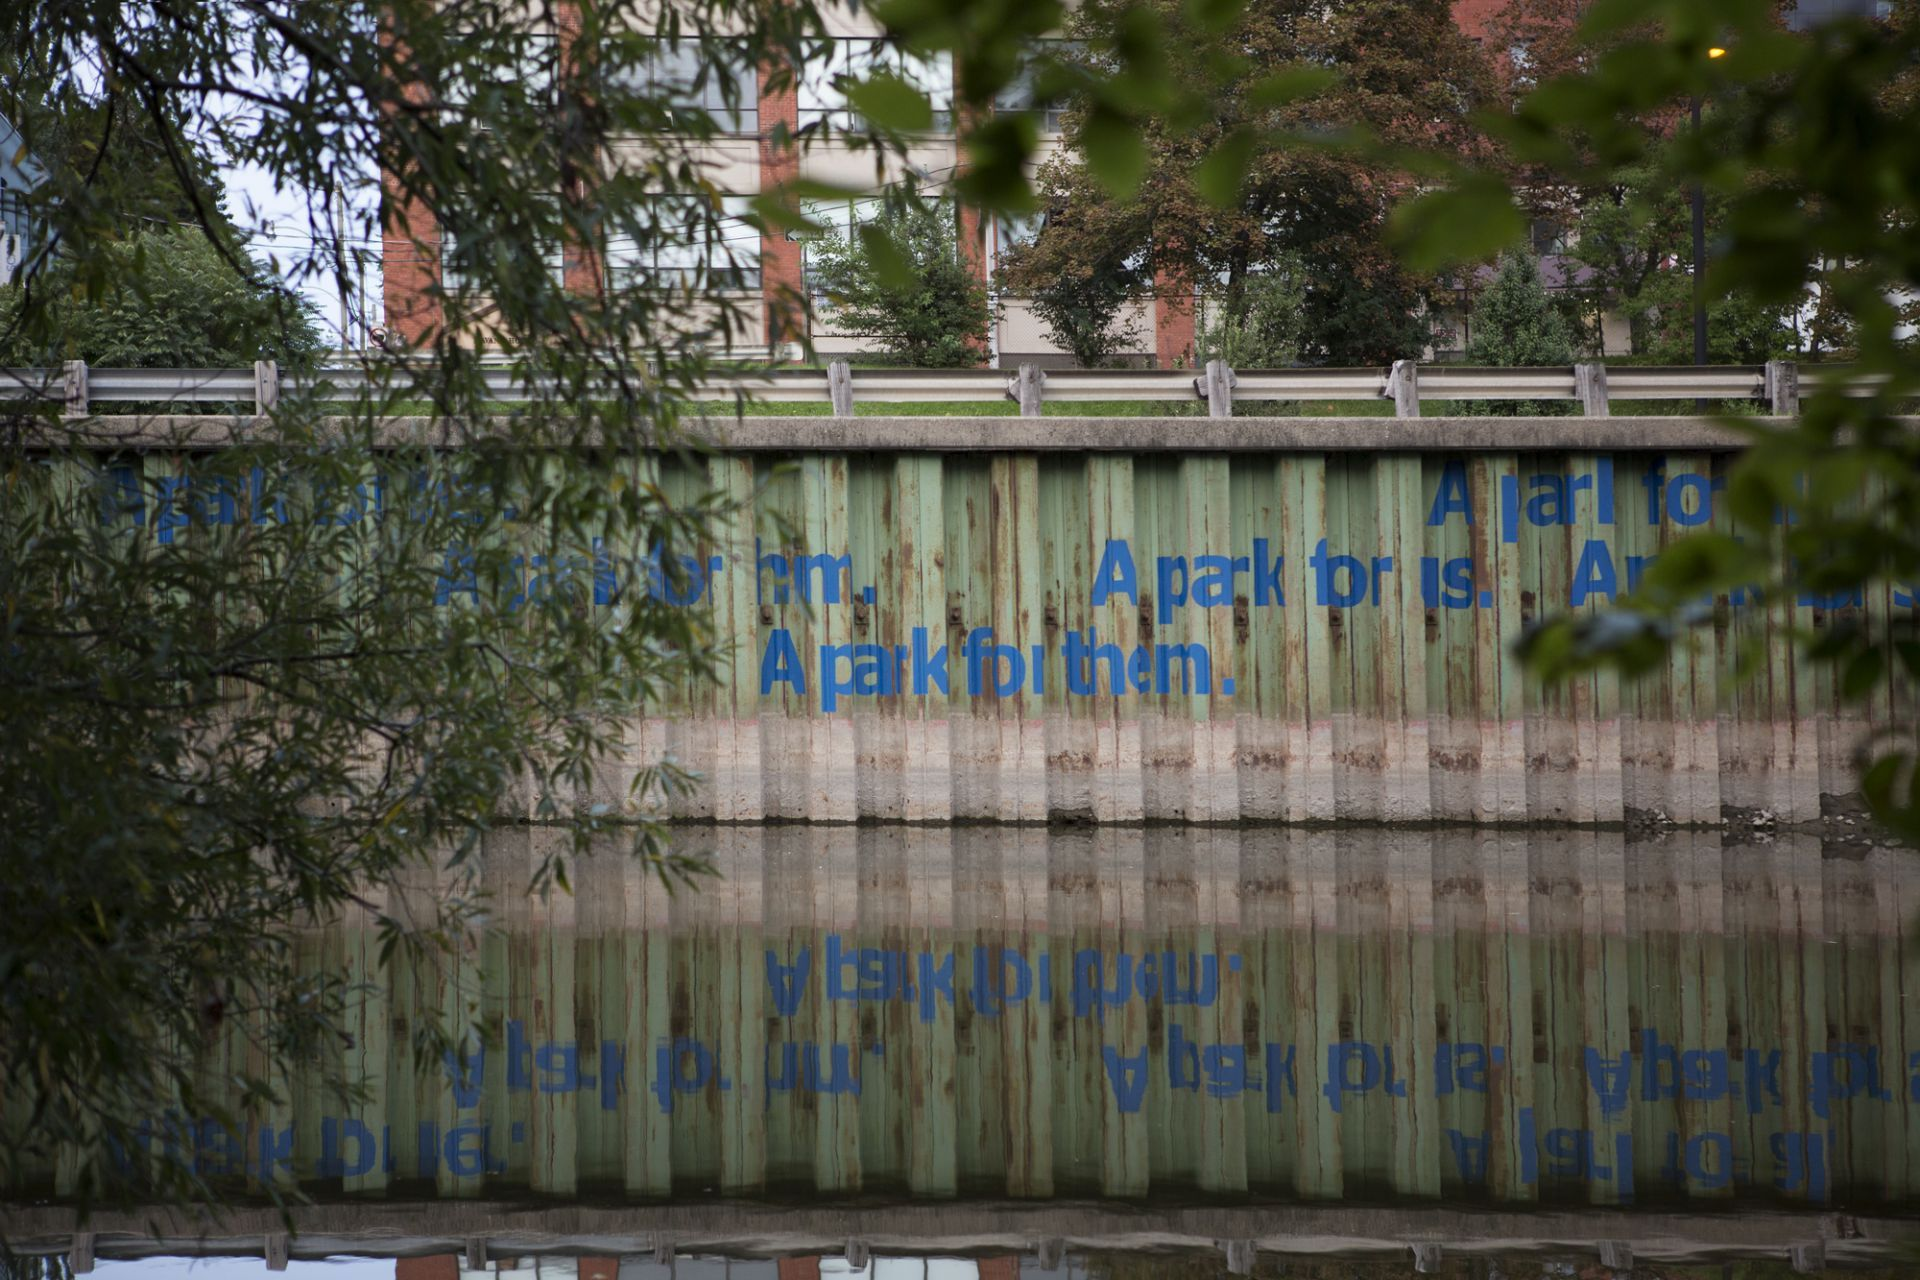 """""""A PARK FOR ALL"""" Mural on the Don River, Toronto. Credit: Claire Harvie"""